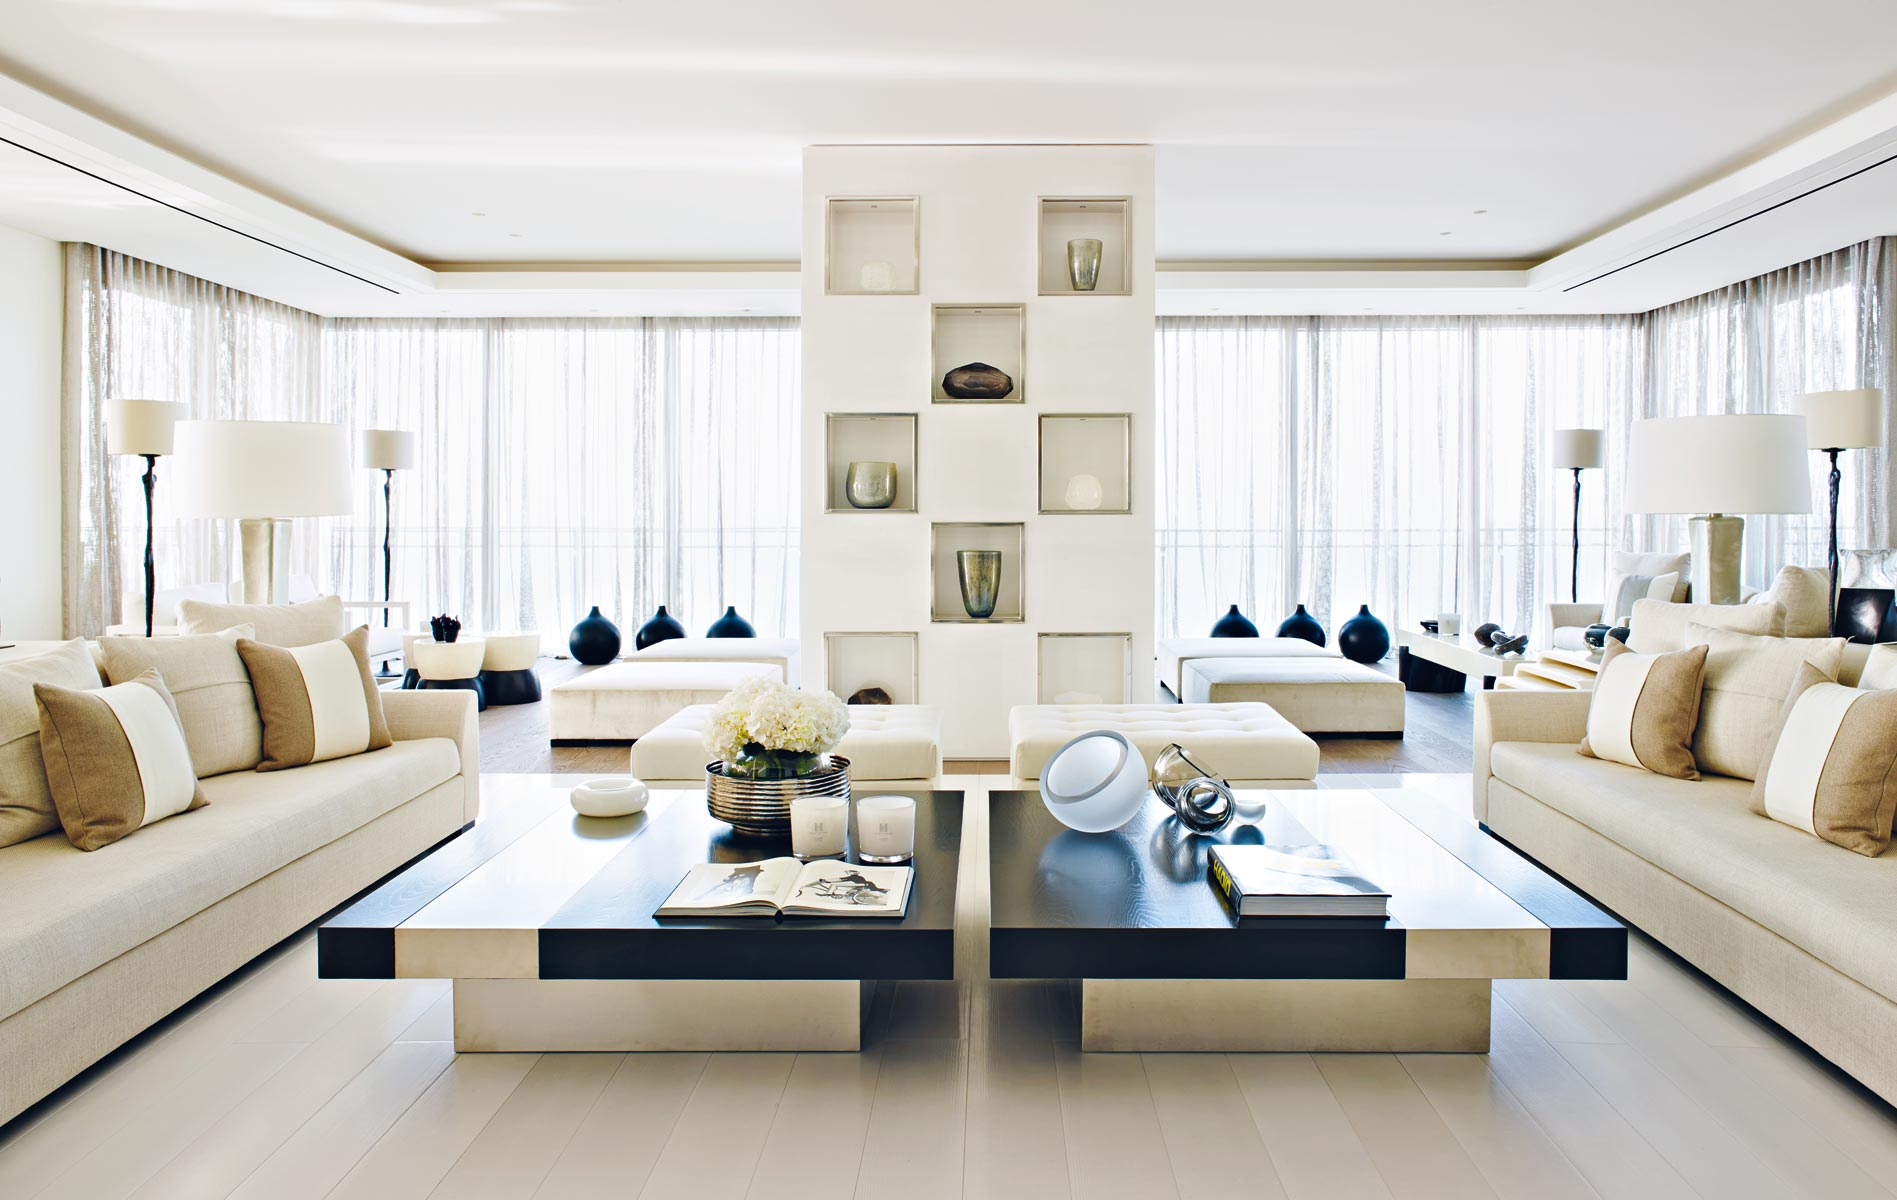 Top interior designer the work of kelly hoppen for Best interior designers